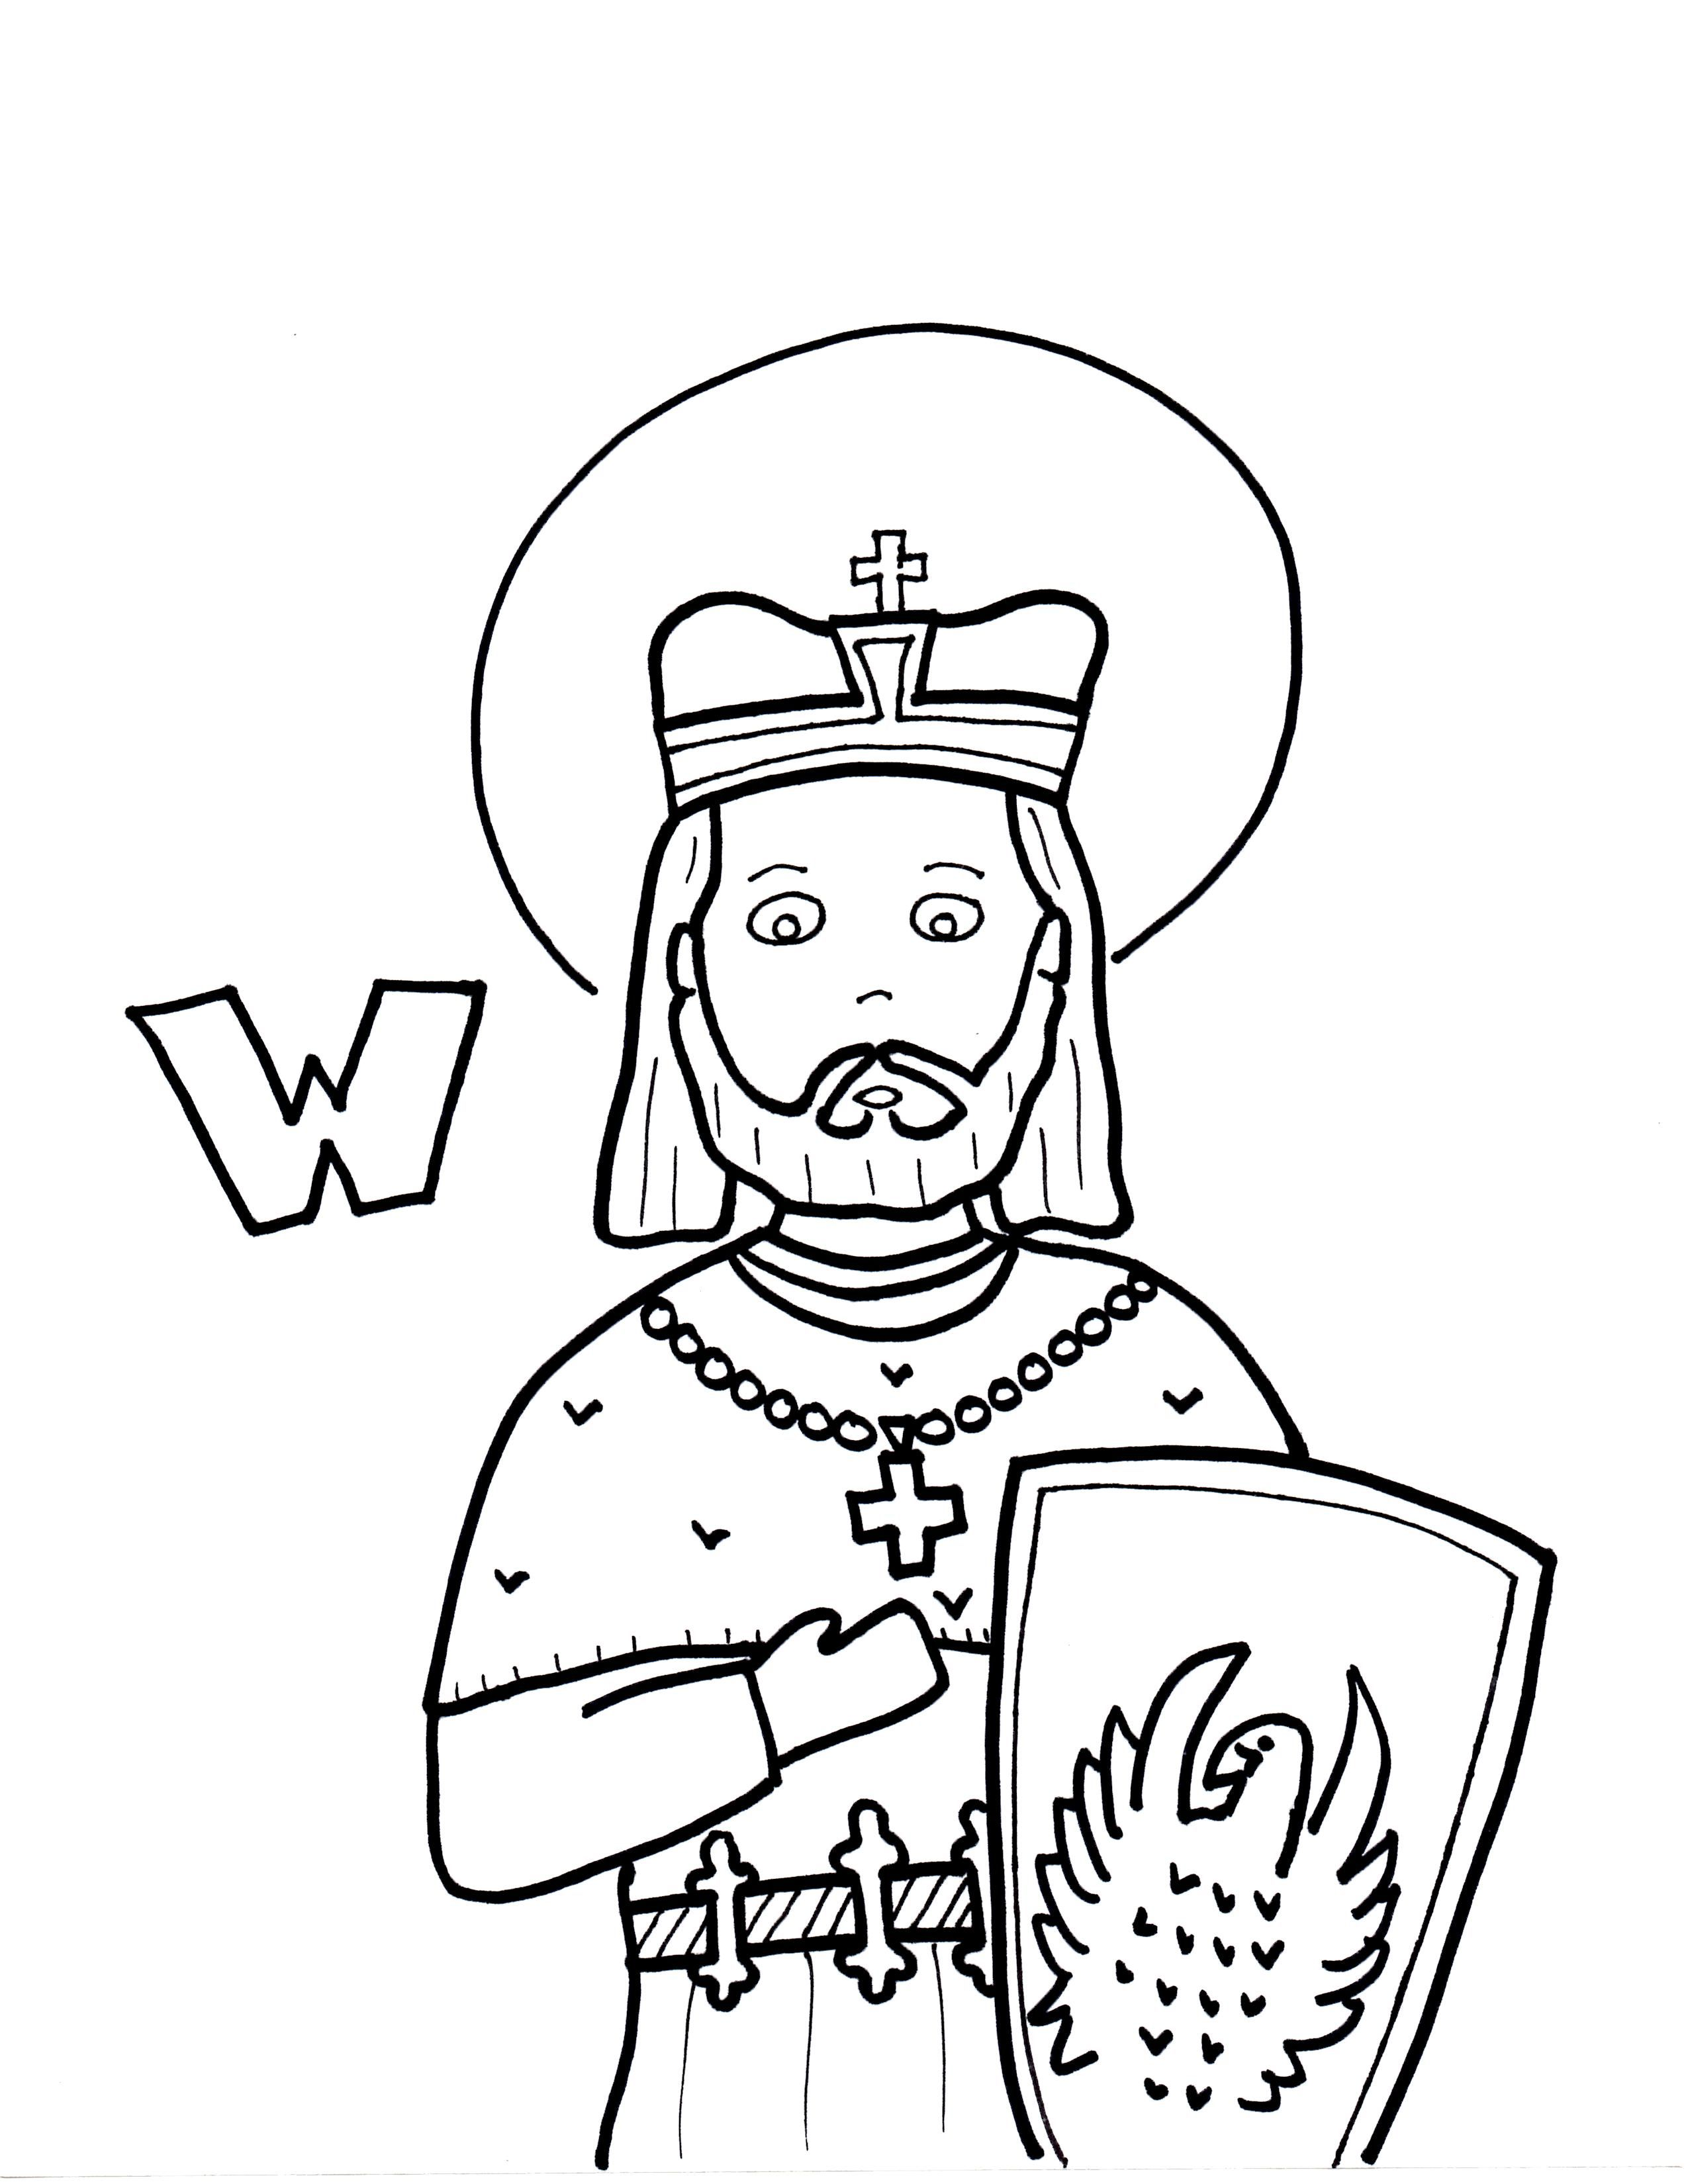 W is for St. Wenceslaus | St wenceslaus, Pdf and Filing